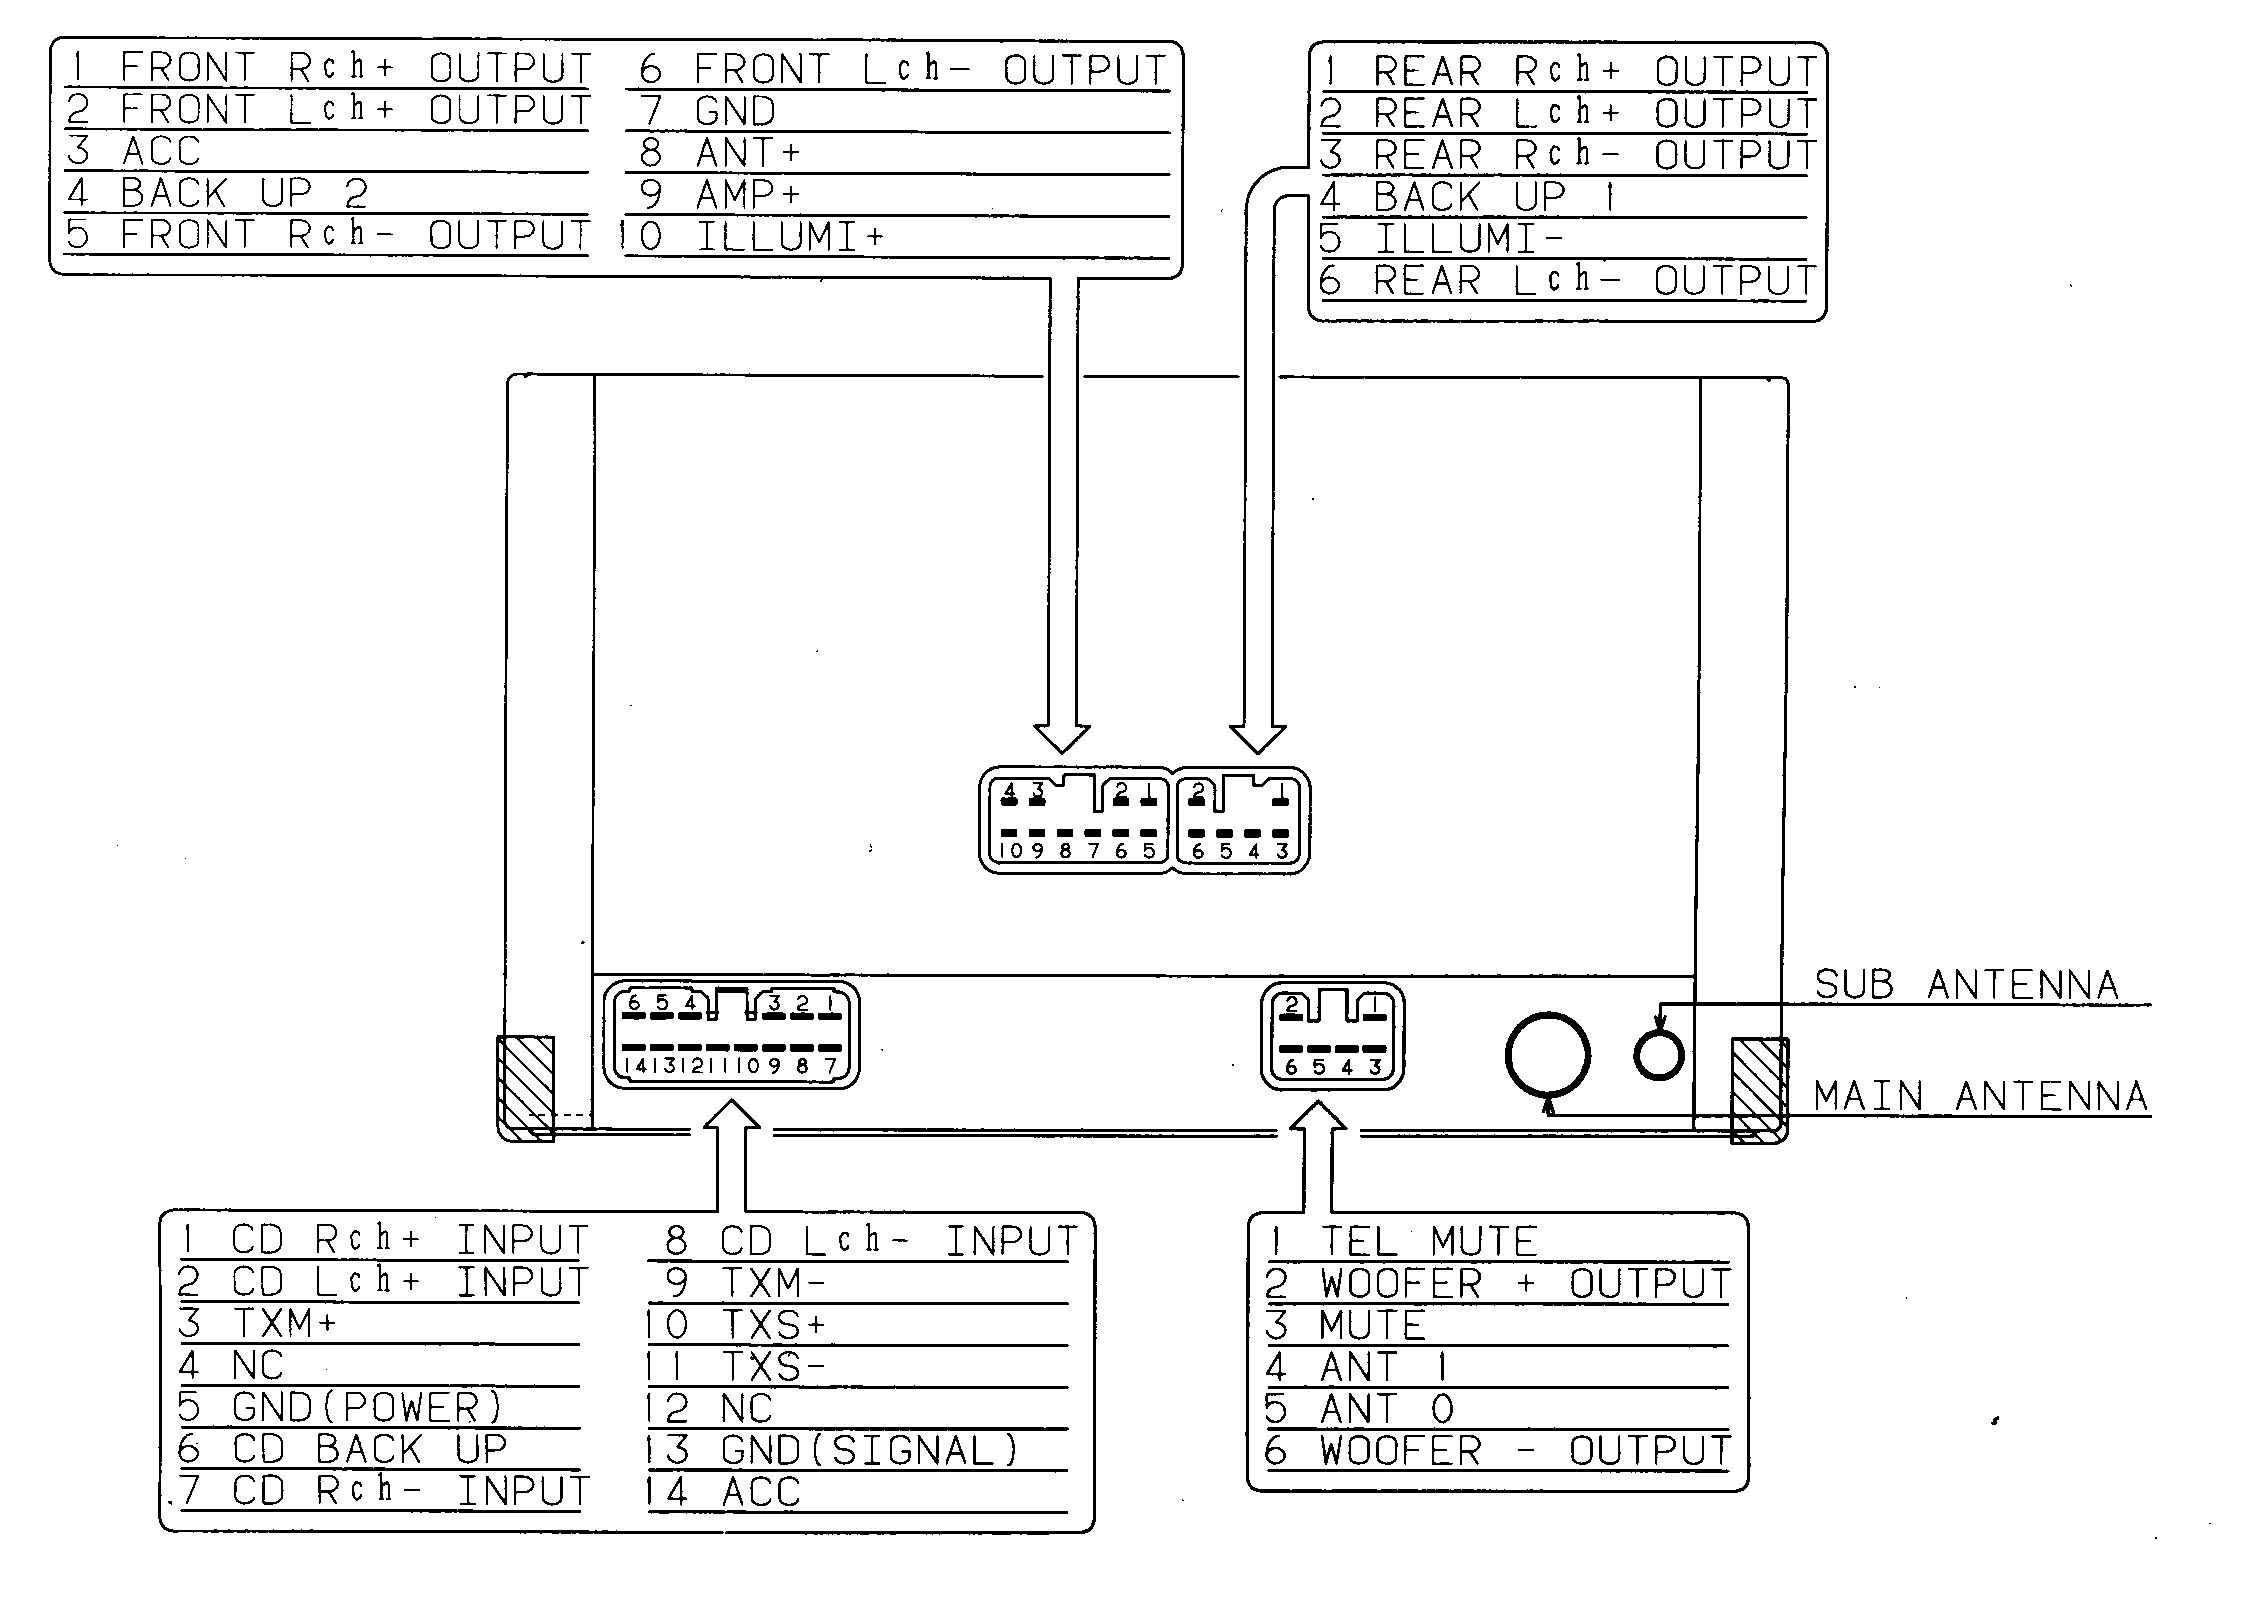 2004 Lexus Rx330 Stereo Wiring Diagram Start Building A Car Radio Audio 1995 Jeep Cherokee Autoradio Connector Wire Rh Tehnomagazin Com 2005